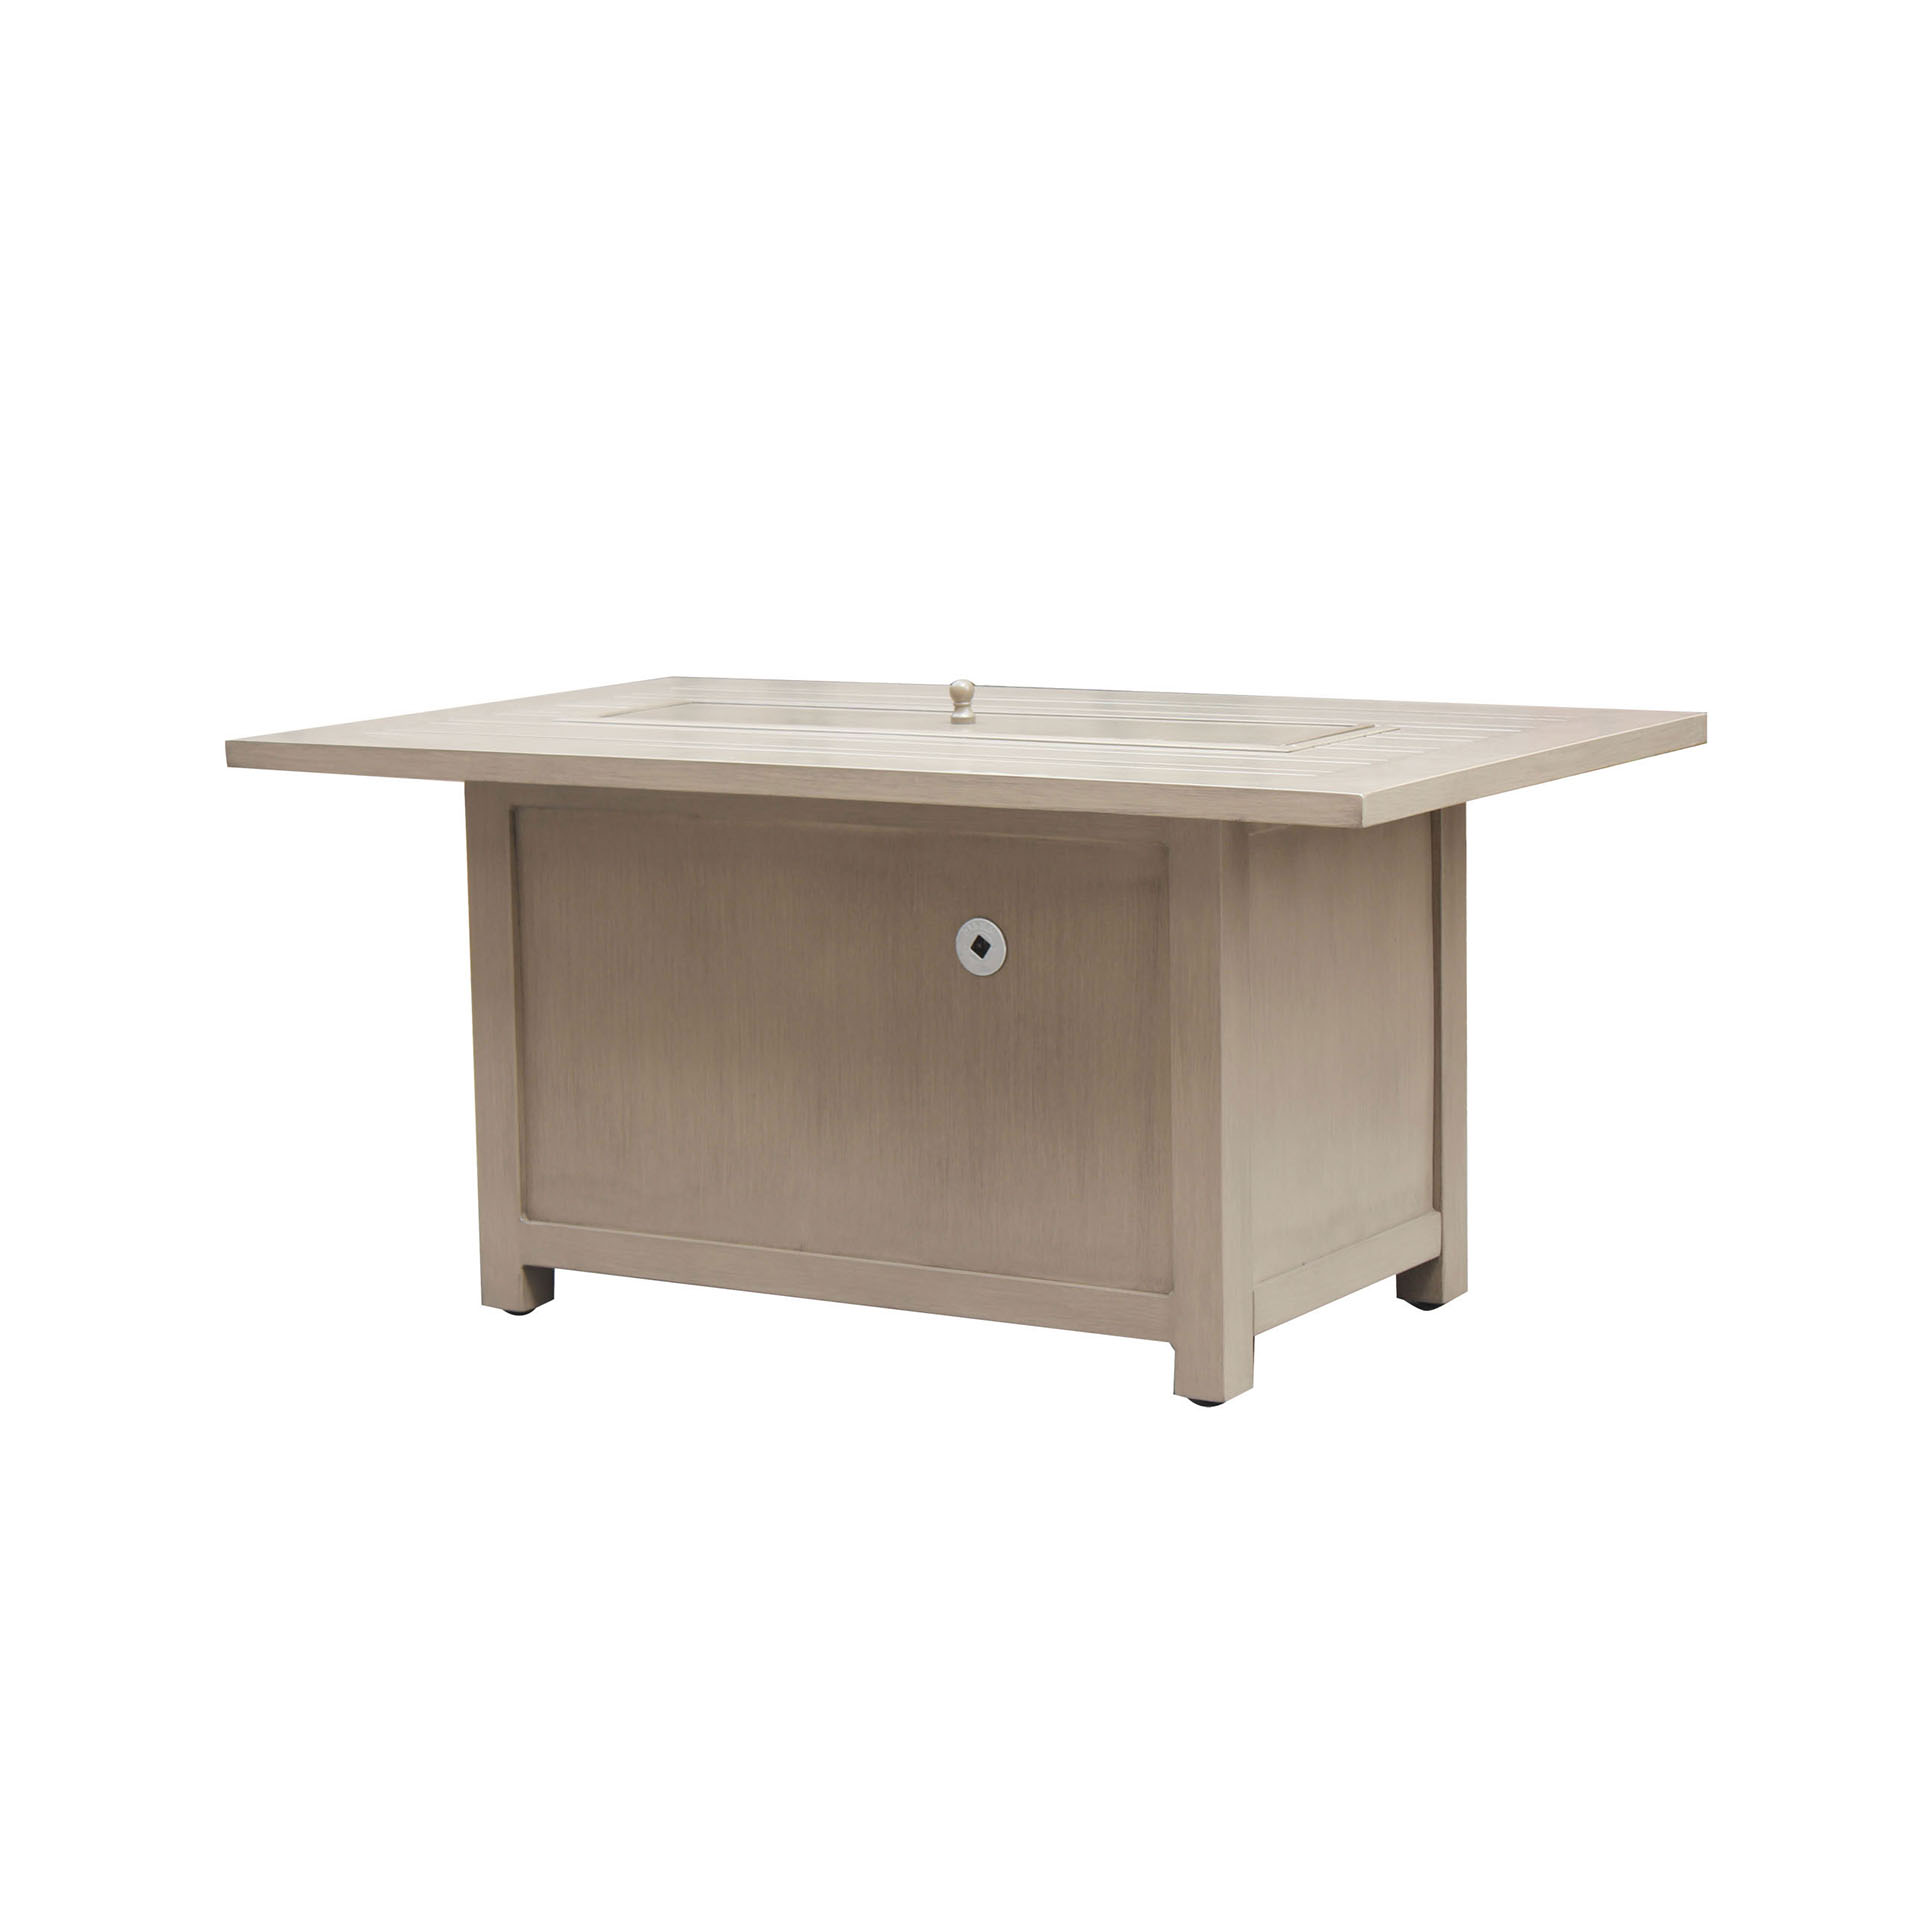 Ratana – 50″ Pozzo Rectangular Fire Table